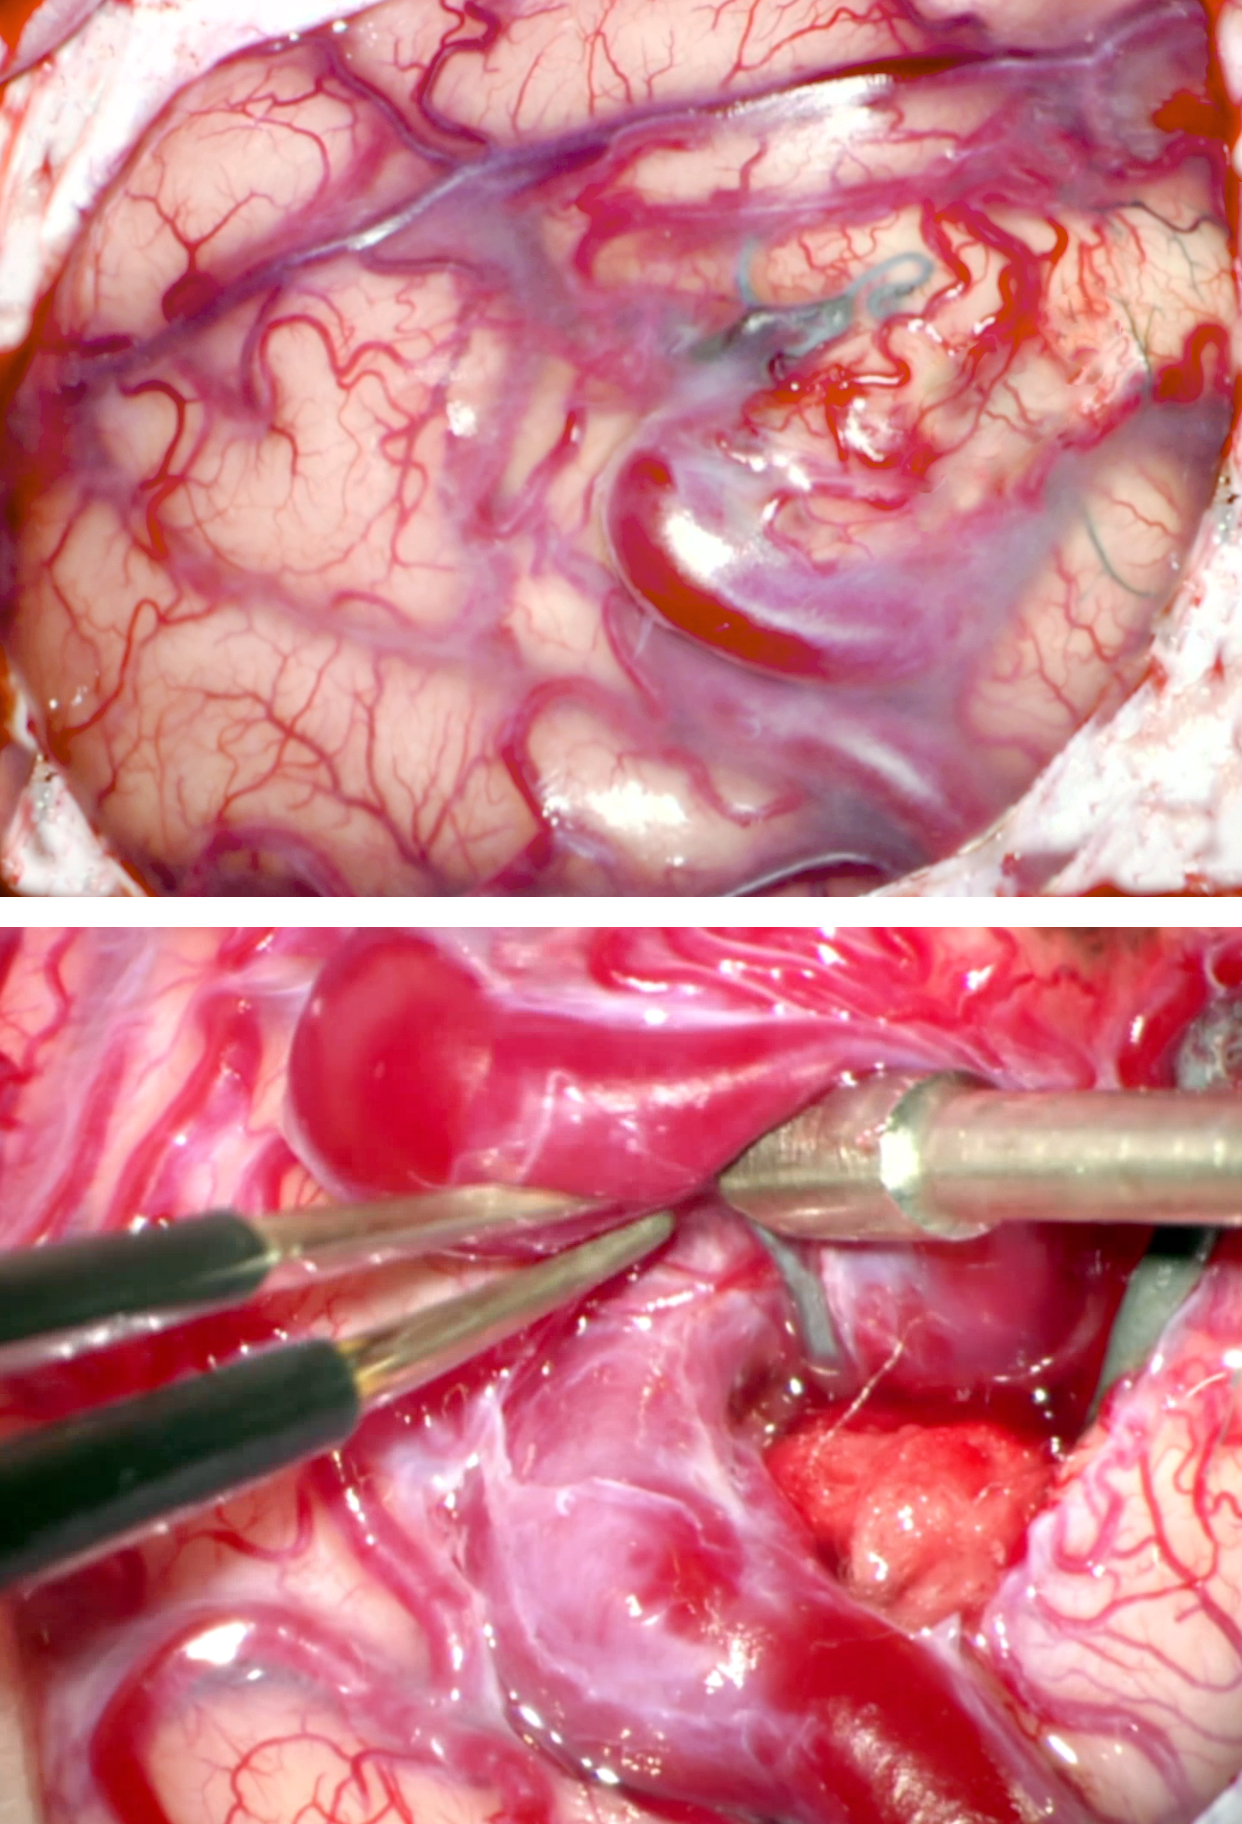 Figure 6: The frontal AVM in Figure 3 is exposed (upper image); there is minimal nidal cortical representation. Note the generous exposure of the surrounding normal cortices. The primary vein was carefully isolated and used as a road map to find the nidus with minimal disruption of the surrounding cortices (lower image). The piece of cotton on the right side of the vein was used to keep the dissection planes open.